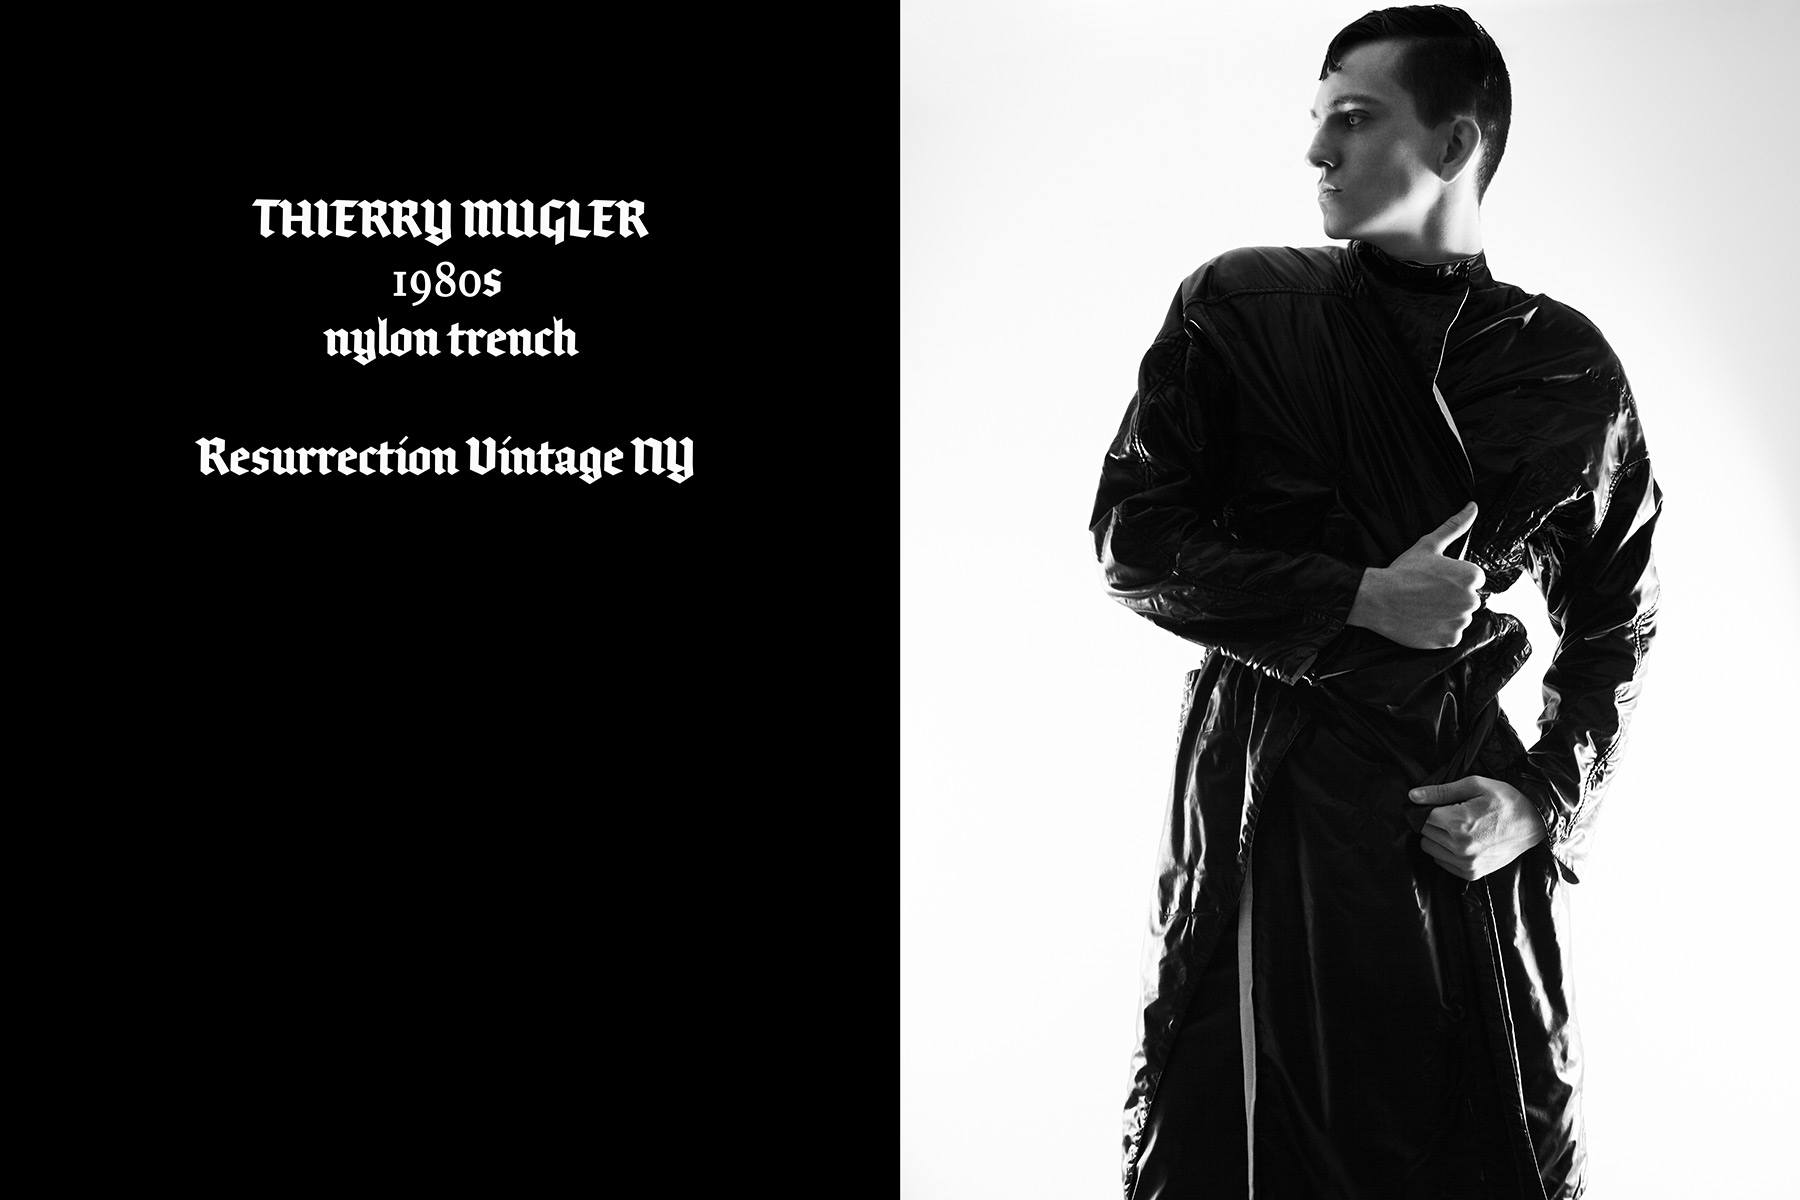 Model Brian Cunningham wears vintage Thierry Mugler, photographed by Alexander Thompson for Ponyboy magazine.